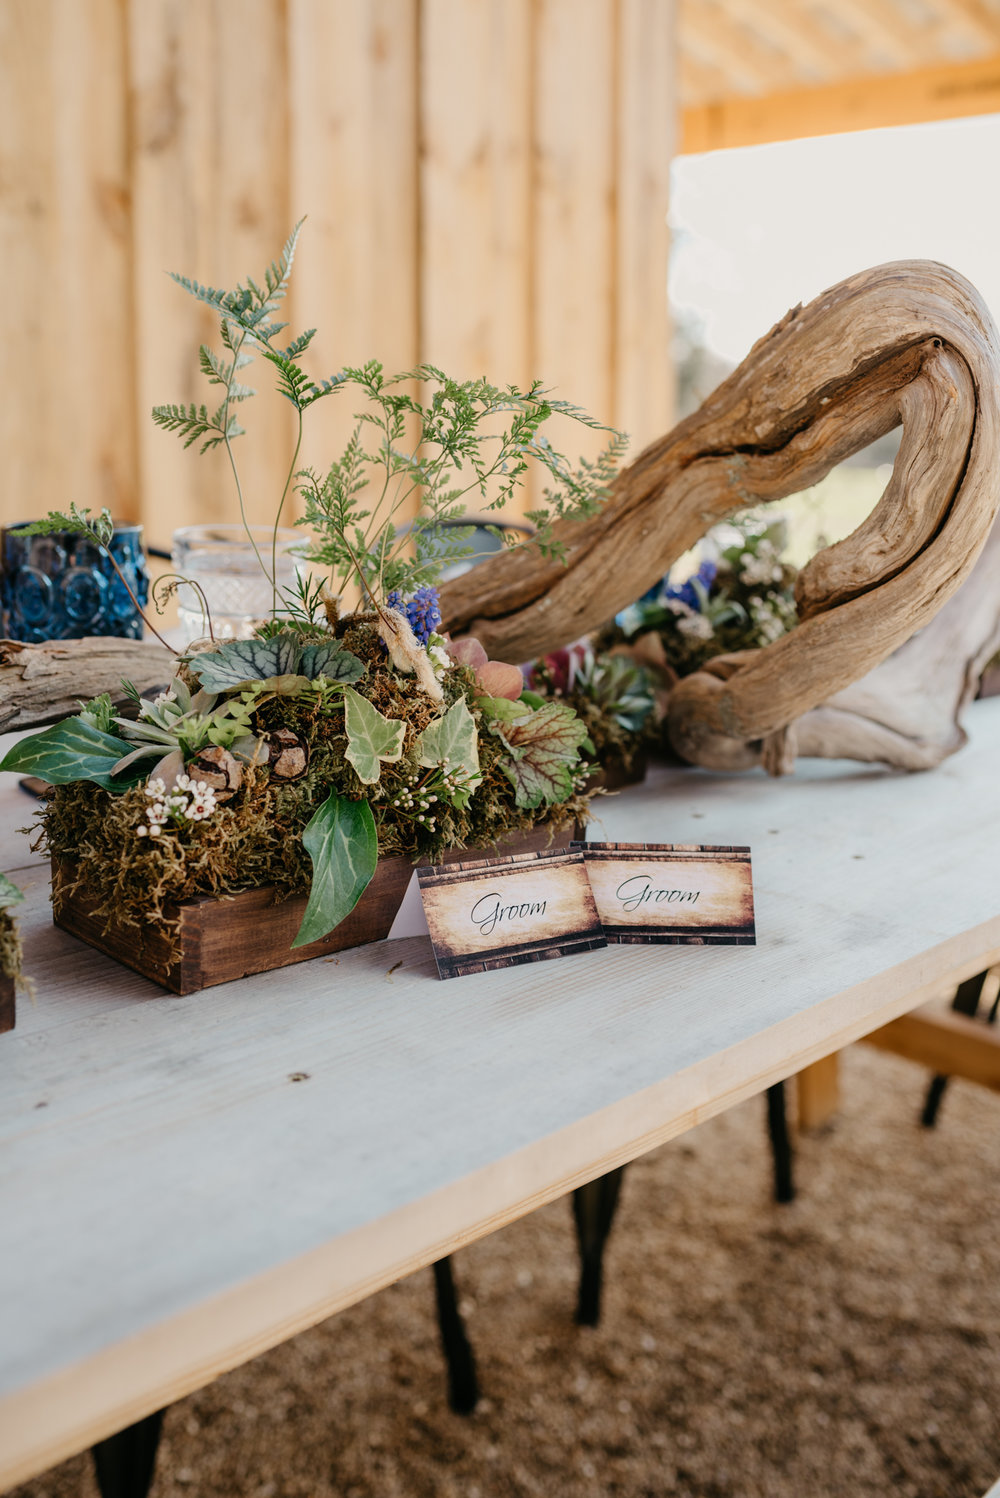 Groom and groom place cards, along with driftwood and glass wares, adorn the farm table at the styled engagement session with Rose Trail Images at Windy Hill Farm near Raleigh, NC.